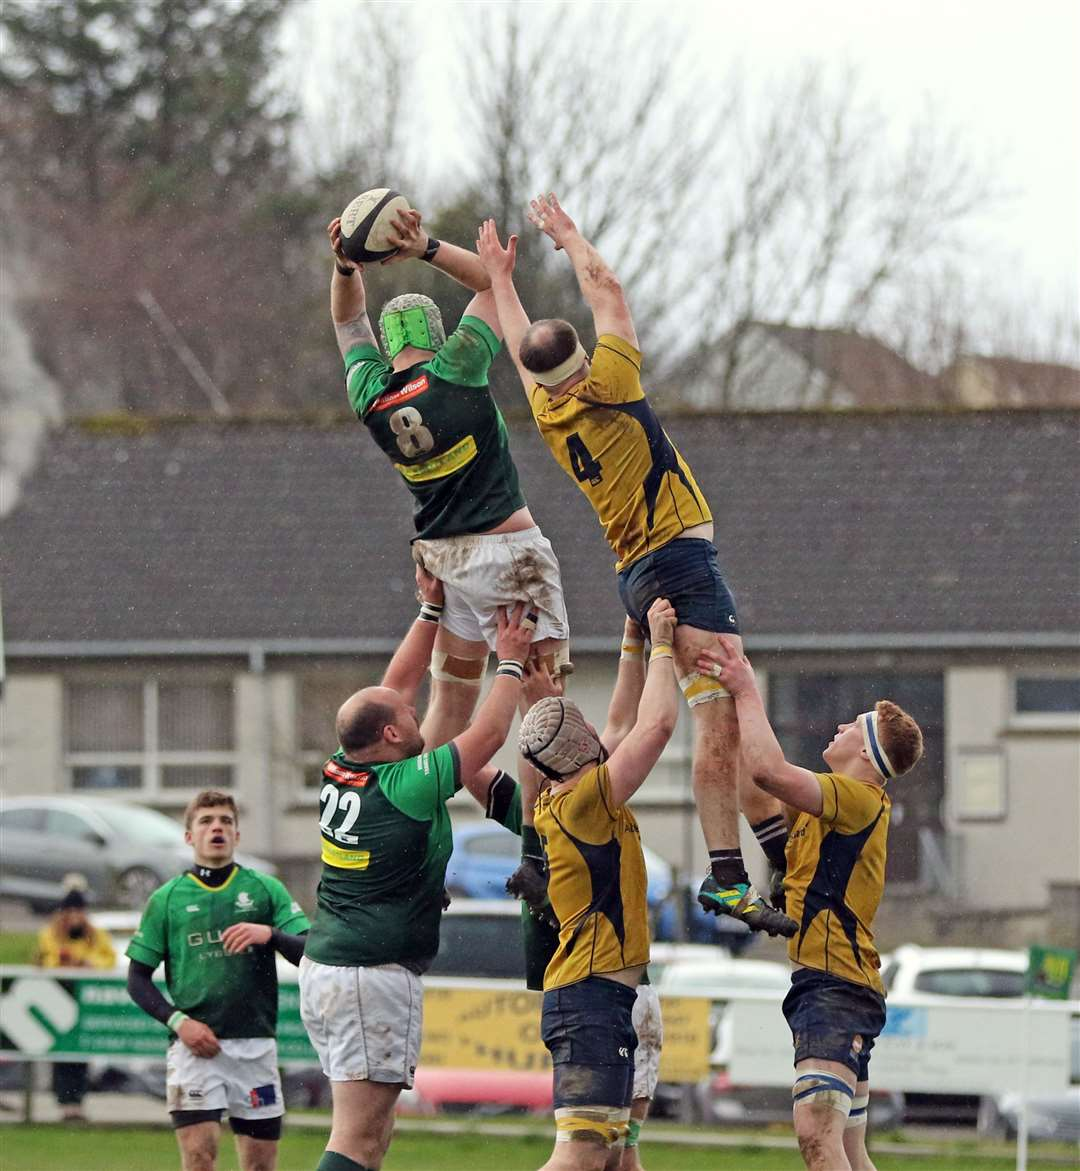 Grant Anderson wins a line-out for the Greens in the recent clash with Gordonians at Millbank. Picture: James Gunn